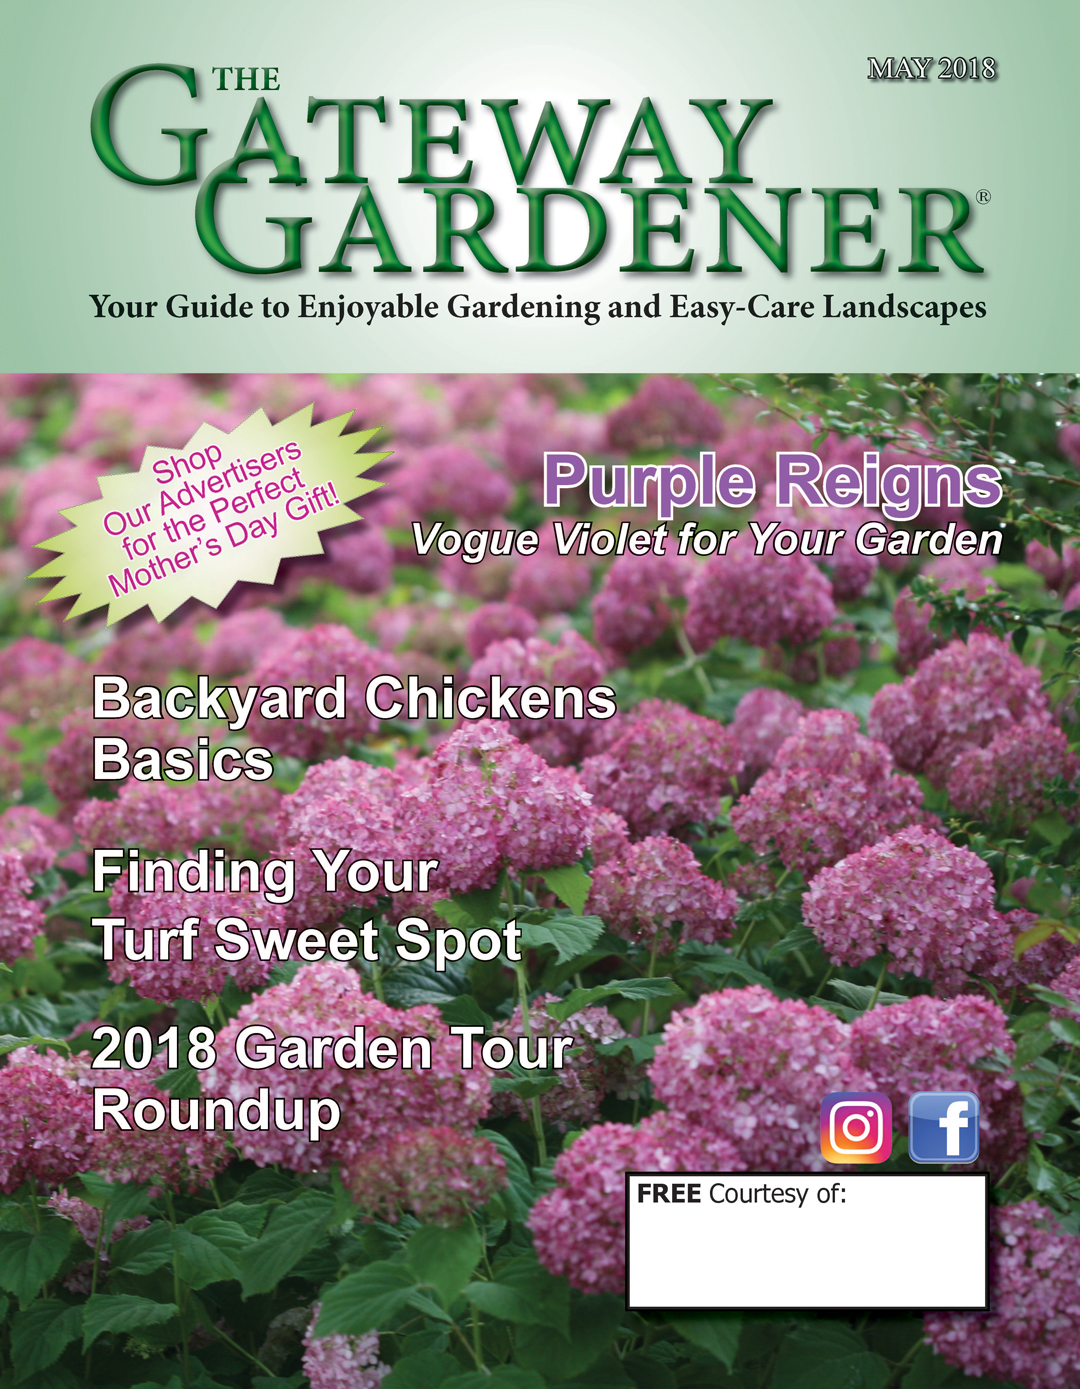 An image of the cover of the May 2018 Gateway Gardener magazine